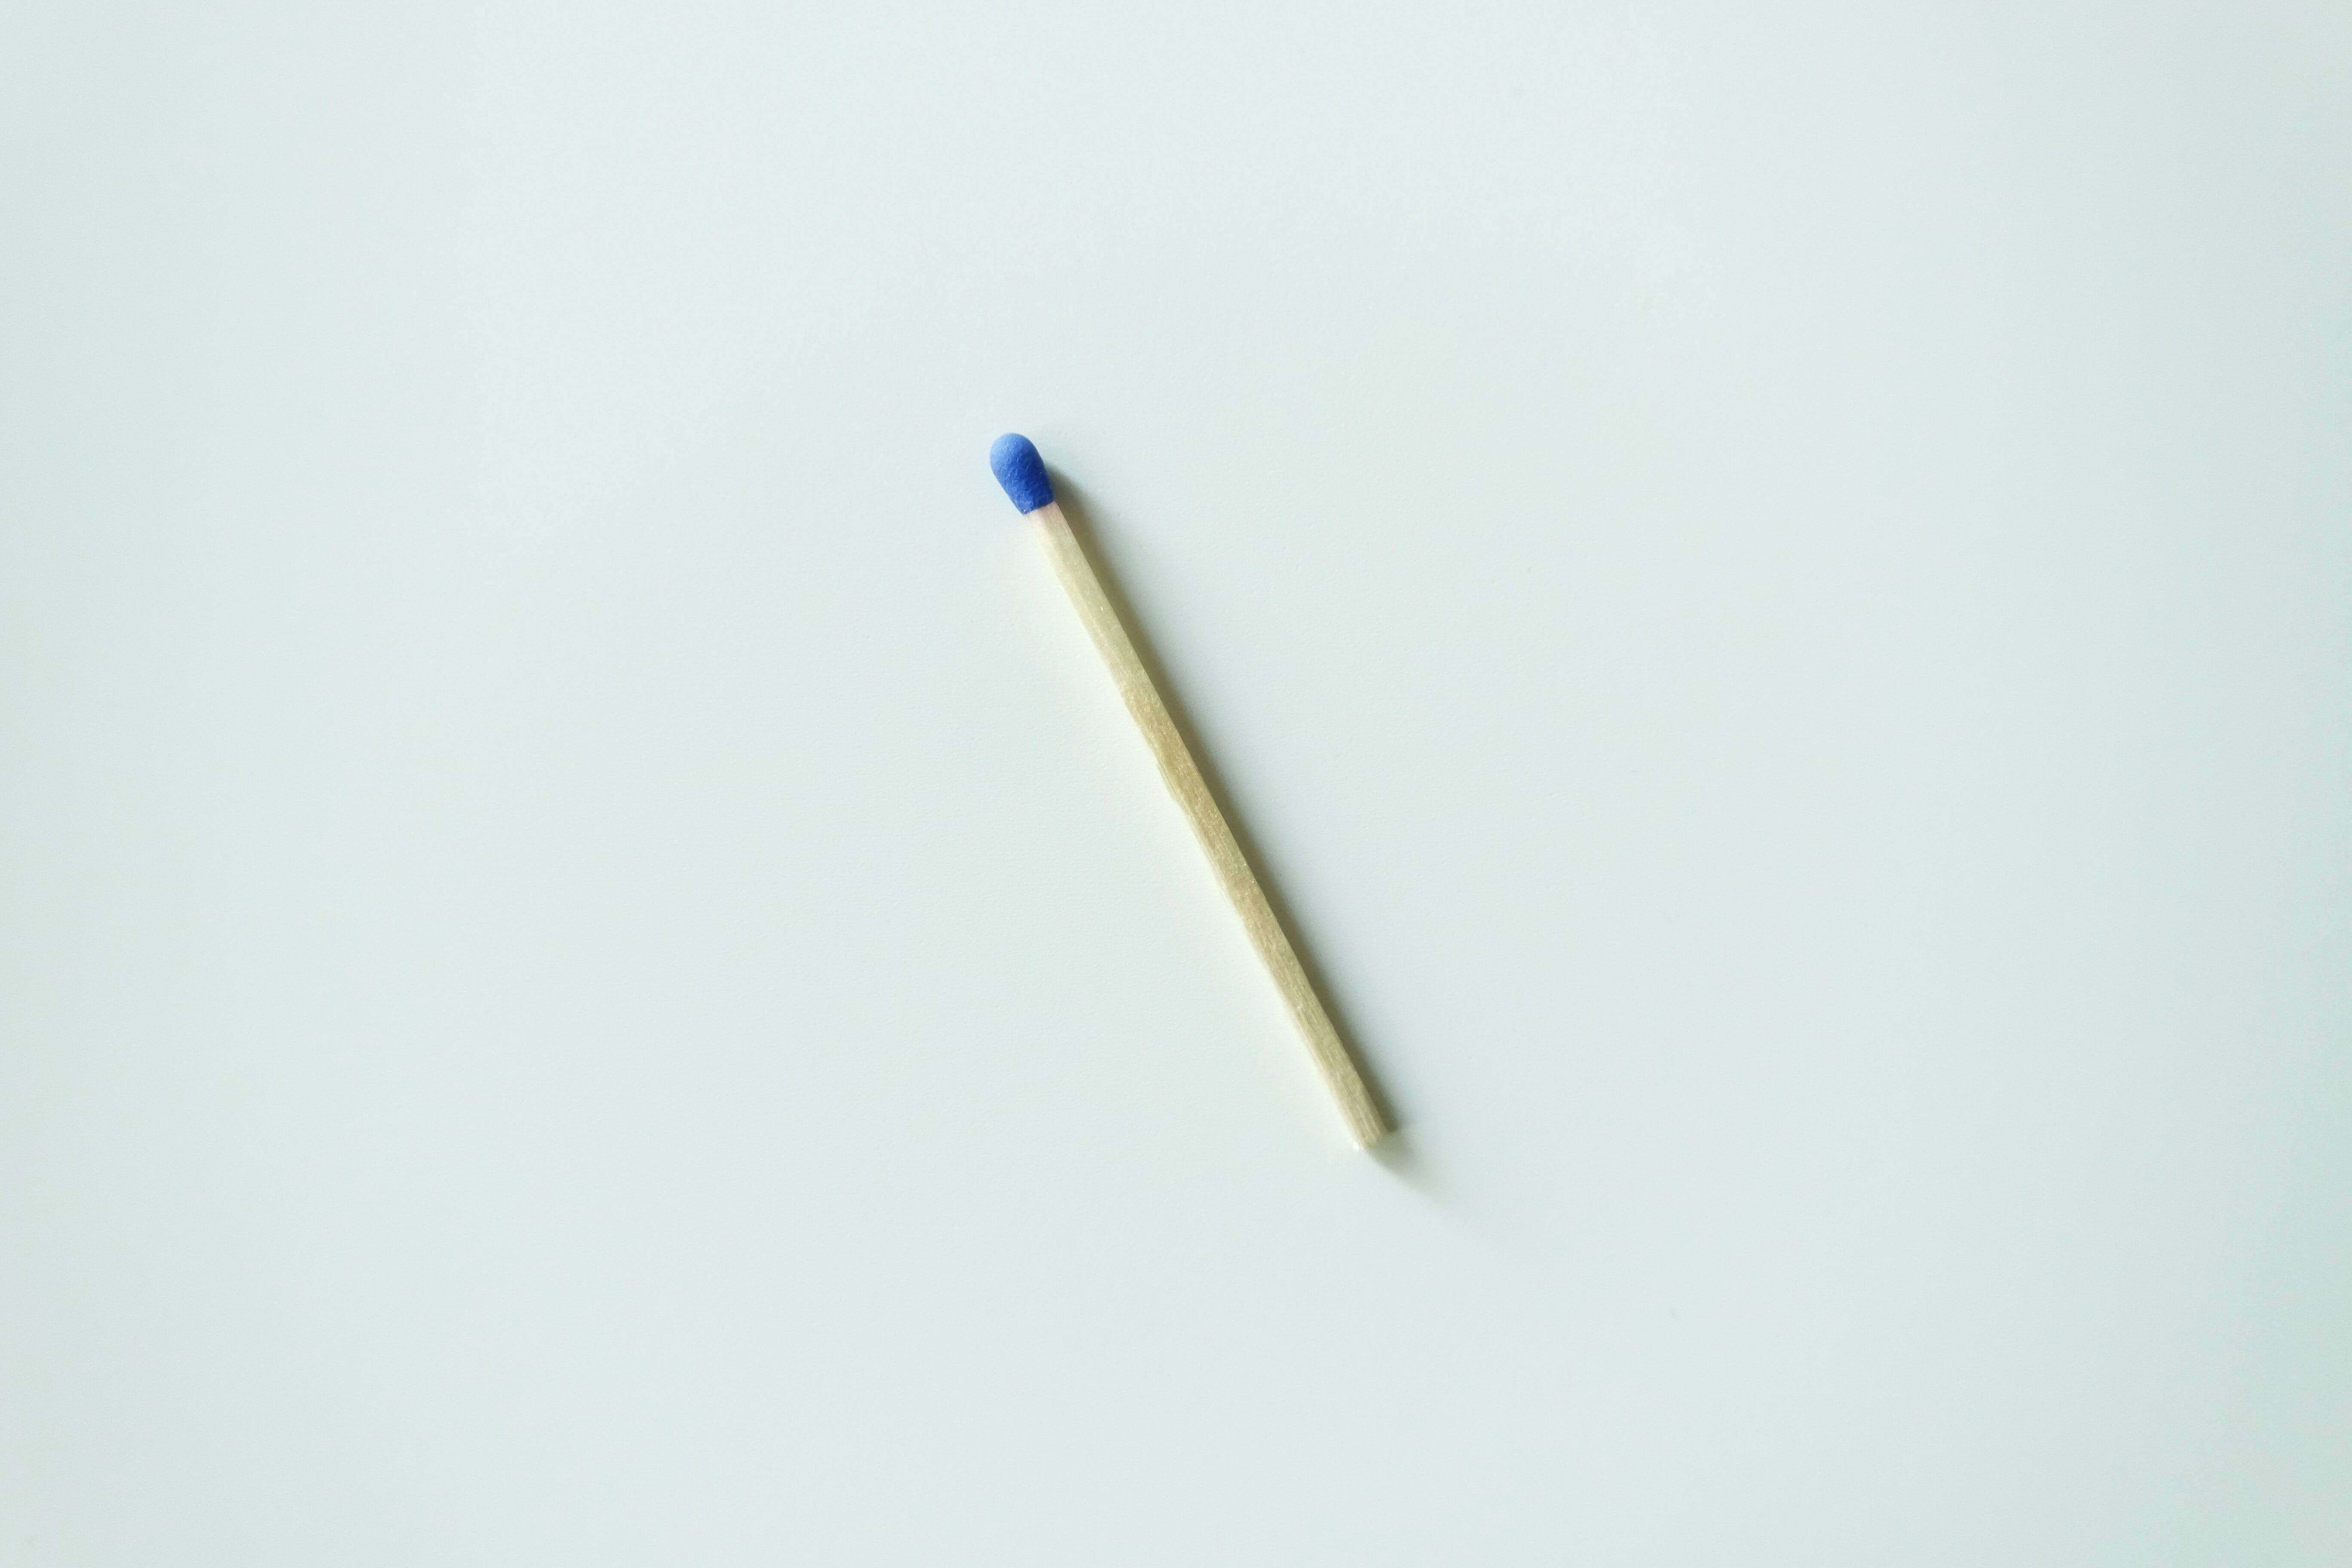 Matchstick On White Surface